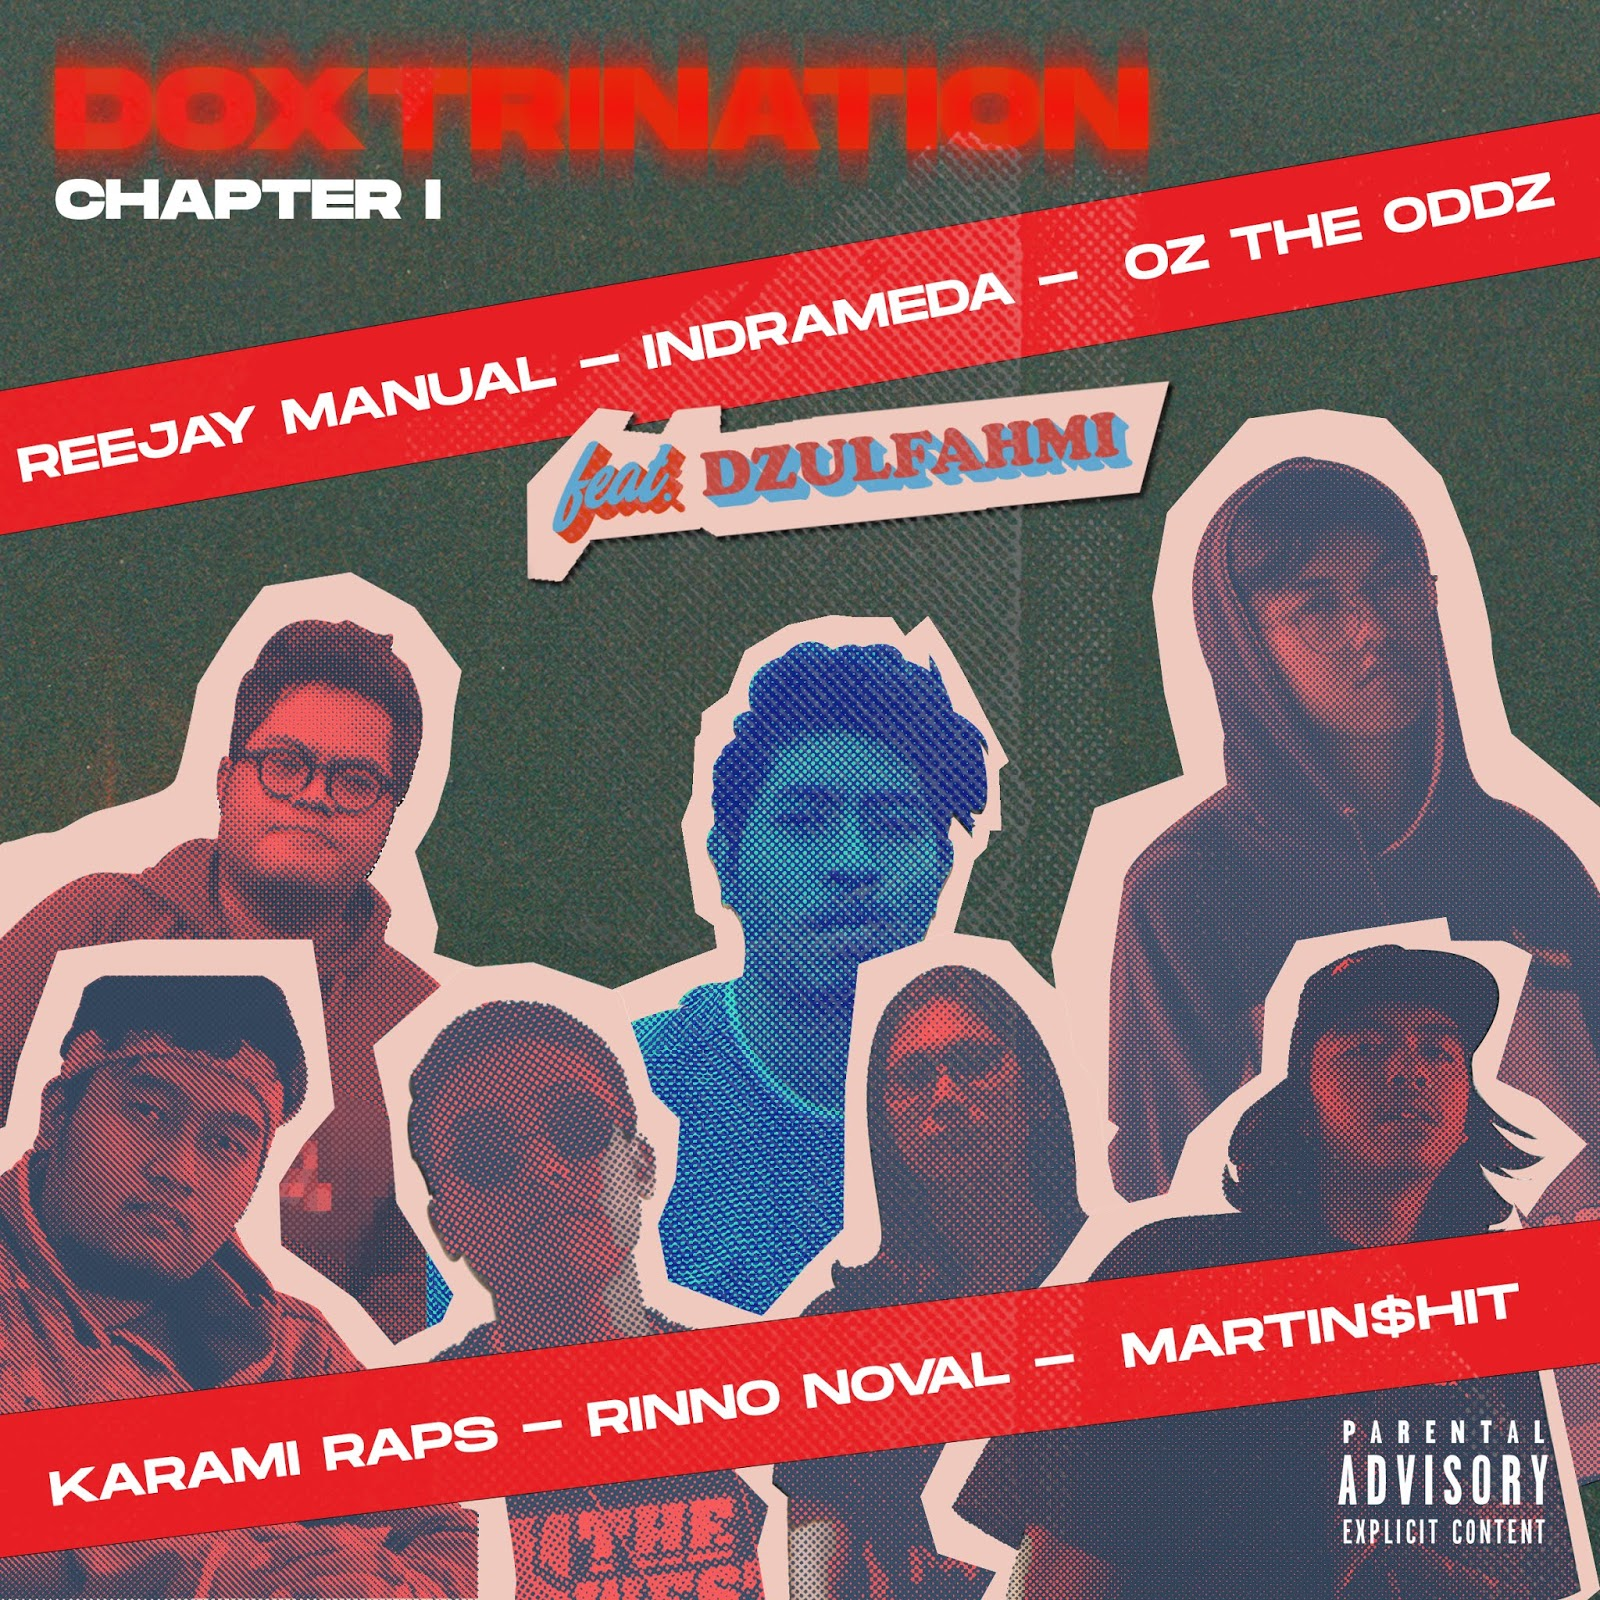 Doxtrination Chapter 1 introduction track dari Doxtrination a.k.a DXT